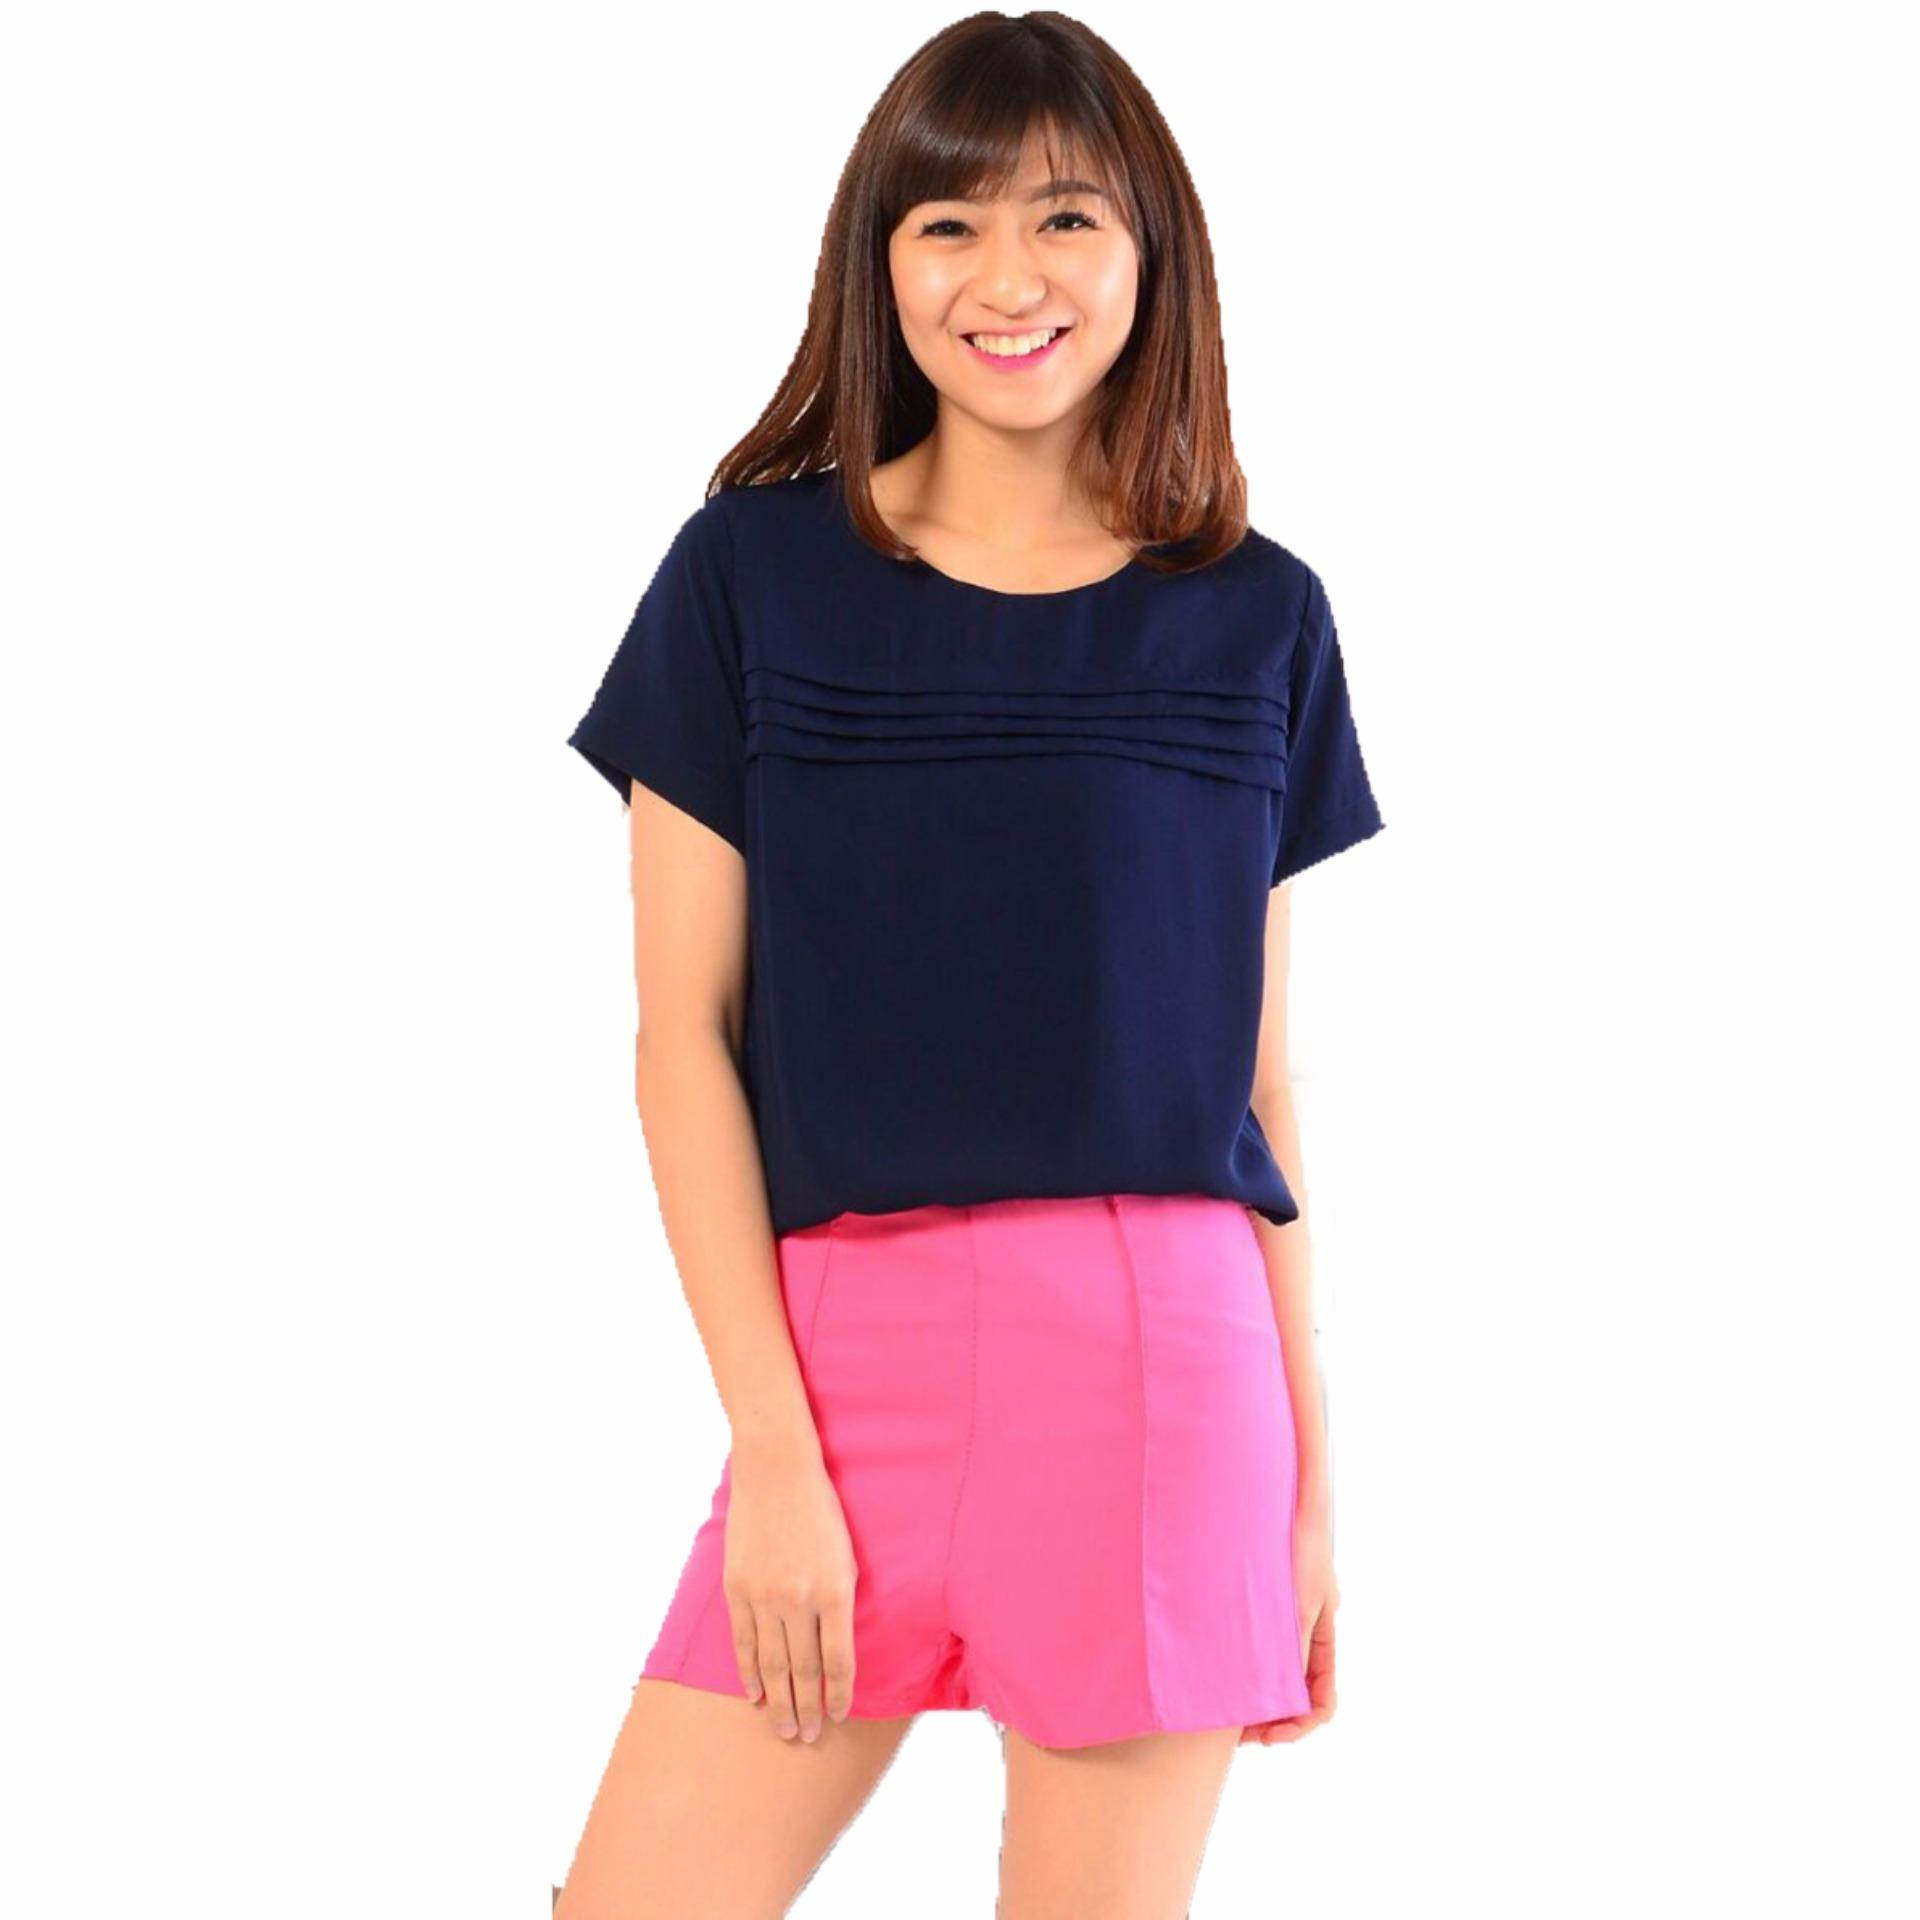 SHOPPAHOLIC SHOP BLOUSE NATASHA NAVY Home Shoppaholic Shop Blouse Natasha Navy .